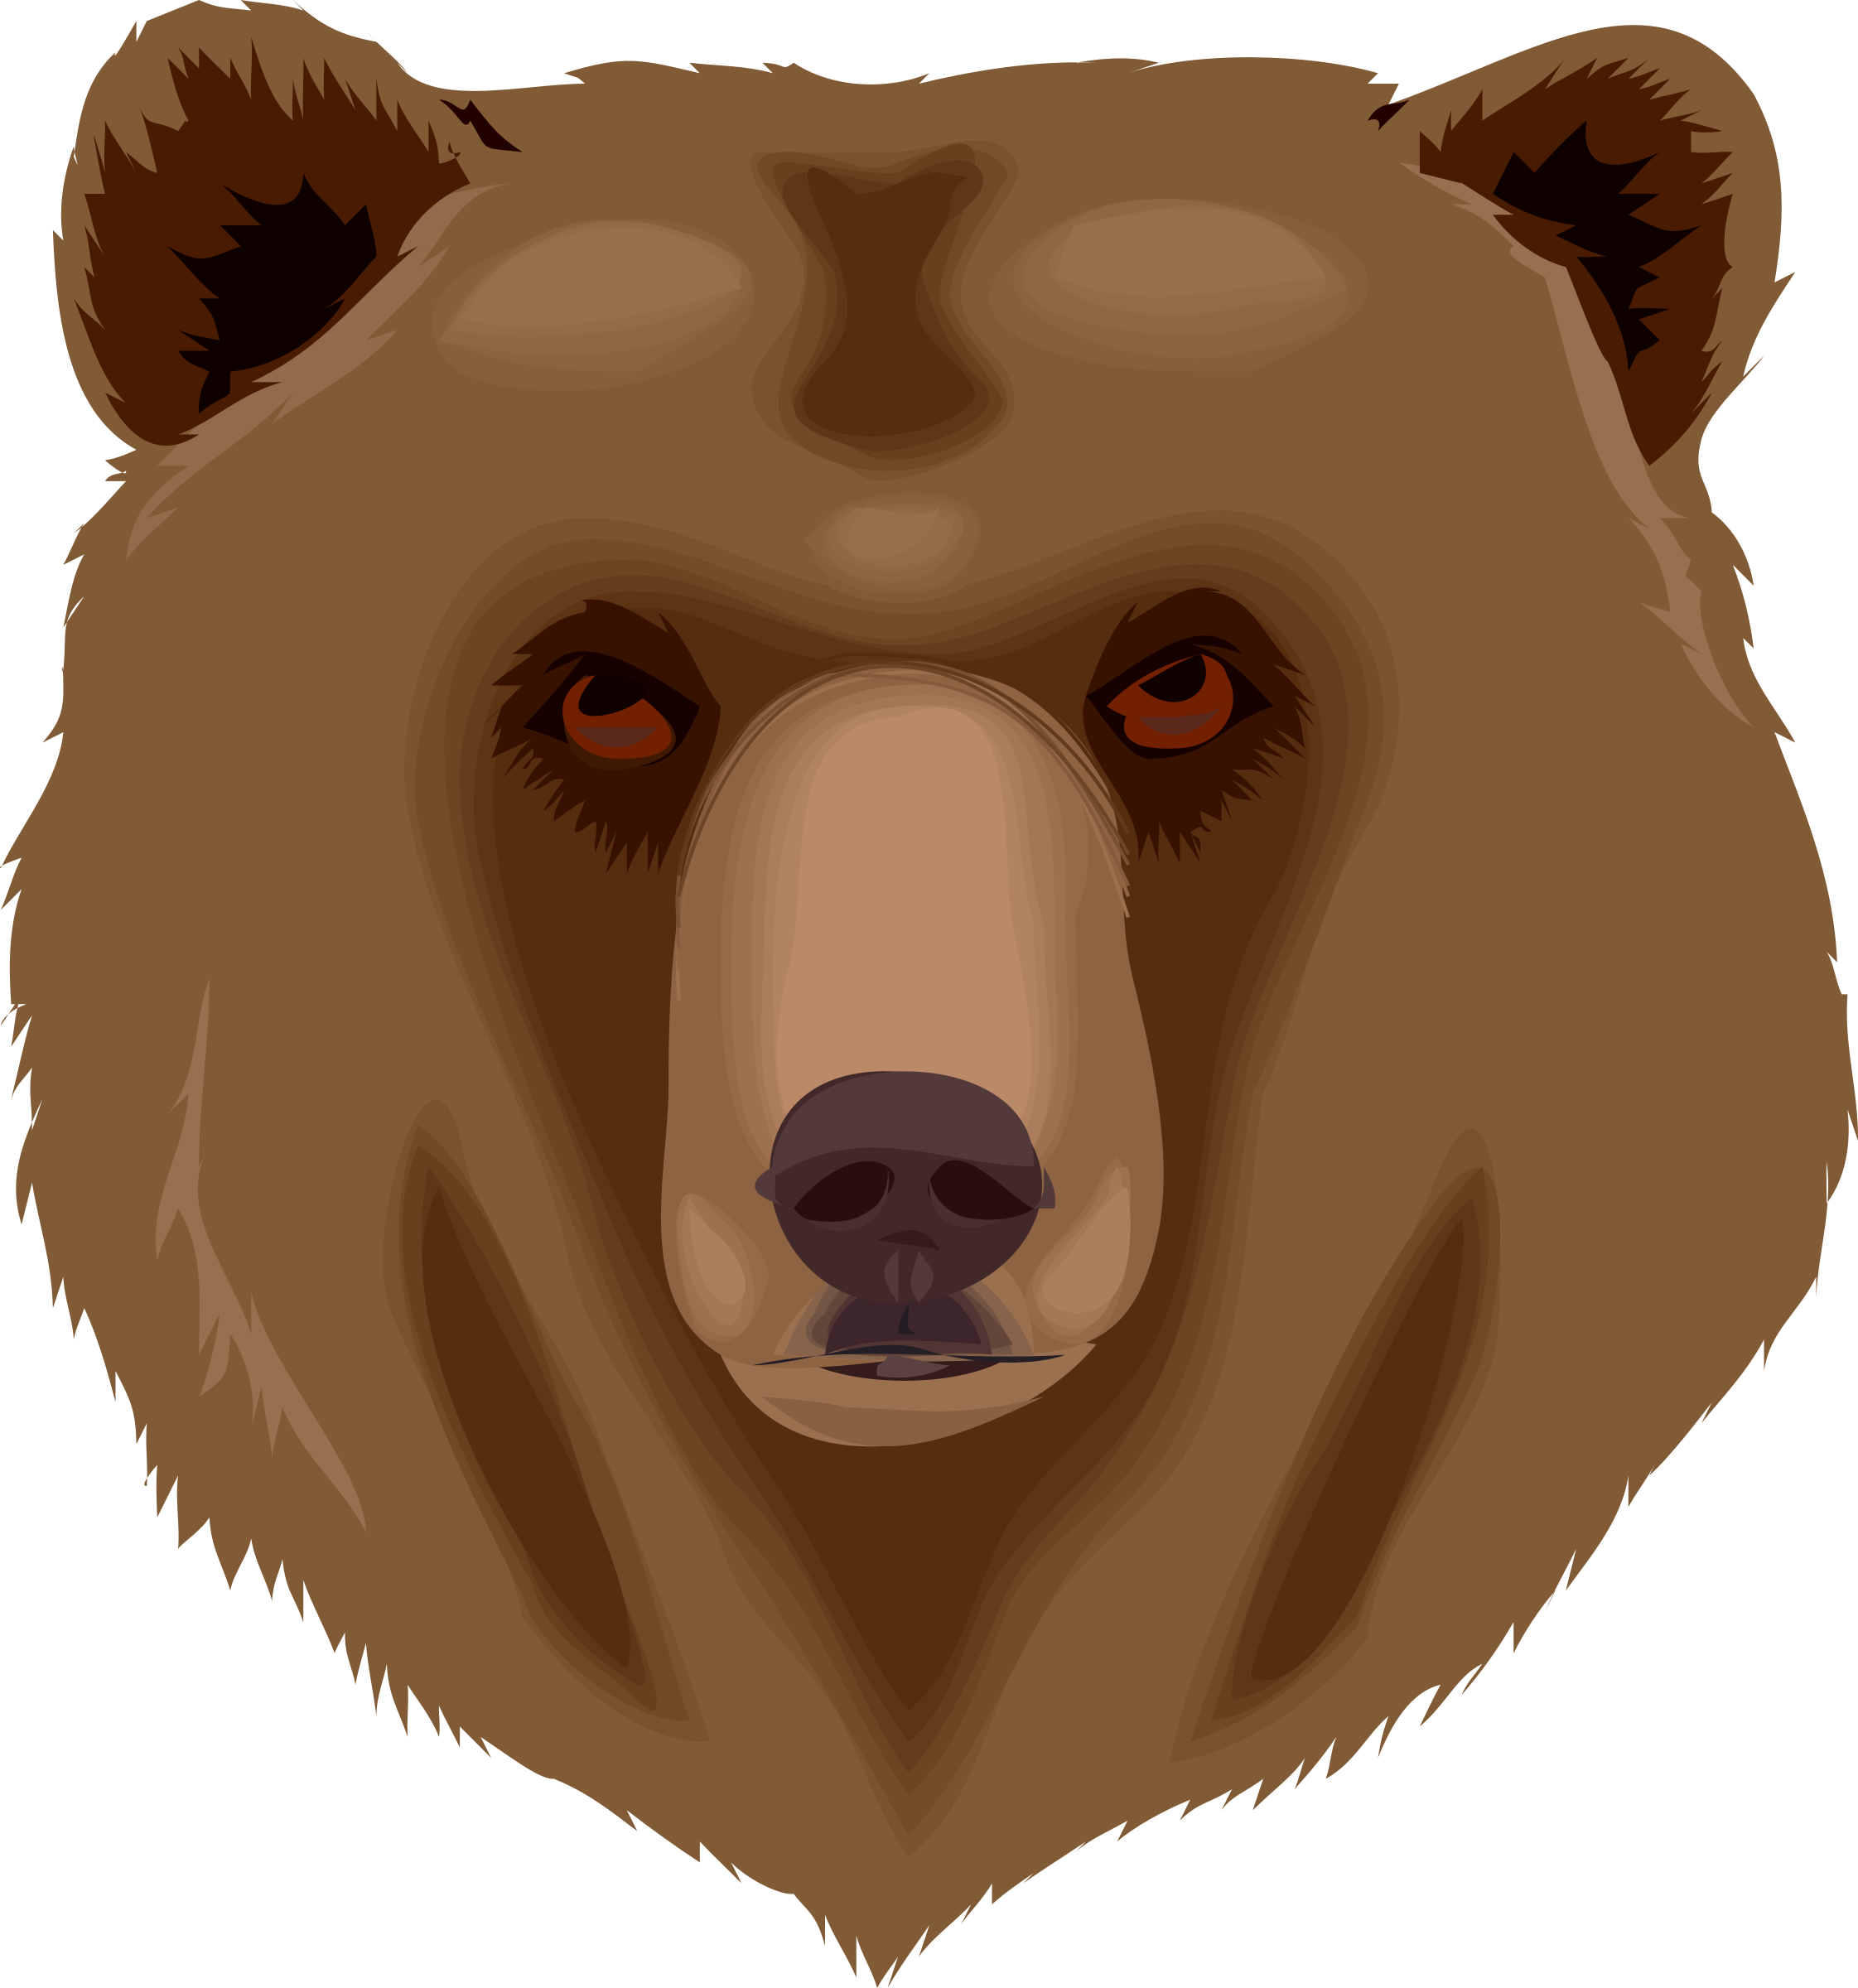 Architetto orso icons png. Bear clipart grizzly bear